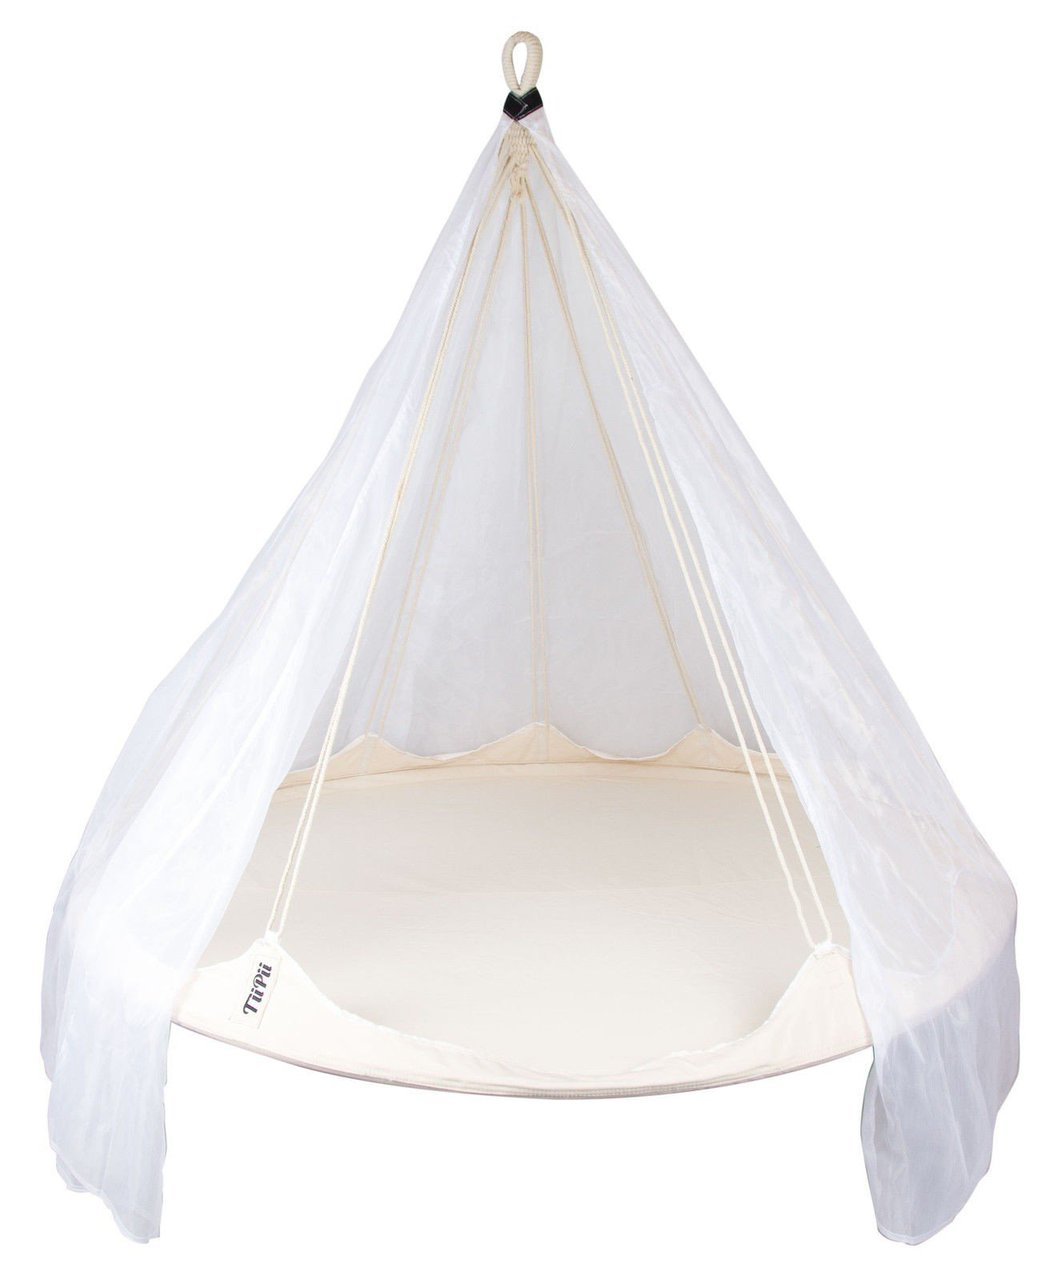 hanging chair notonthehighstreet ergonomic cape town white tiipii floating bed with mosquito net heavenly